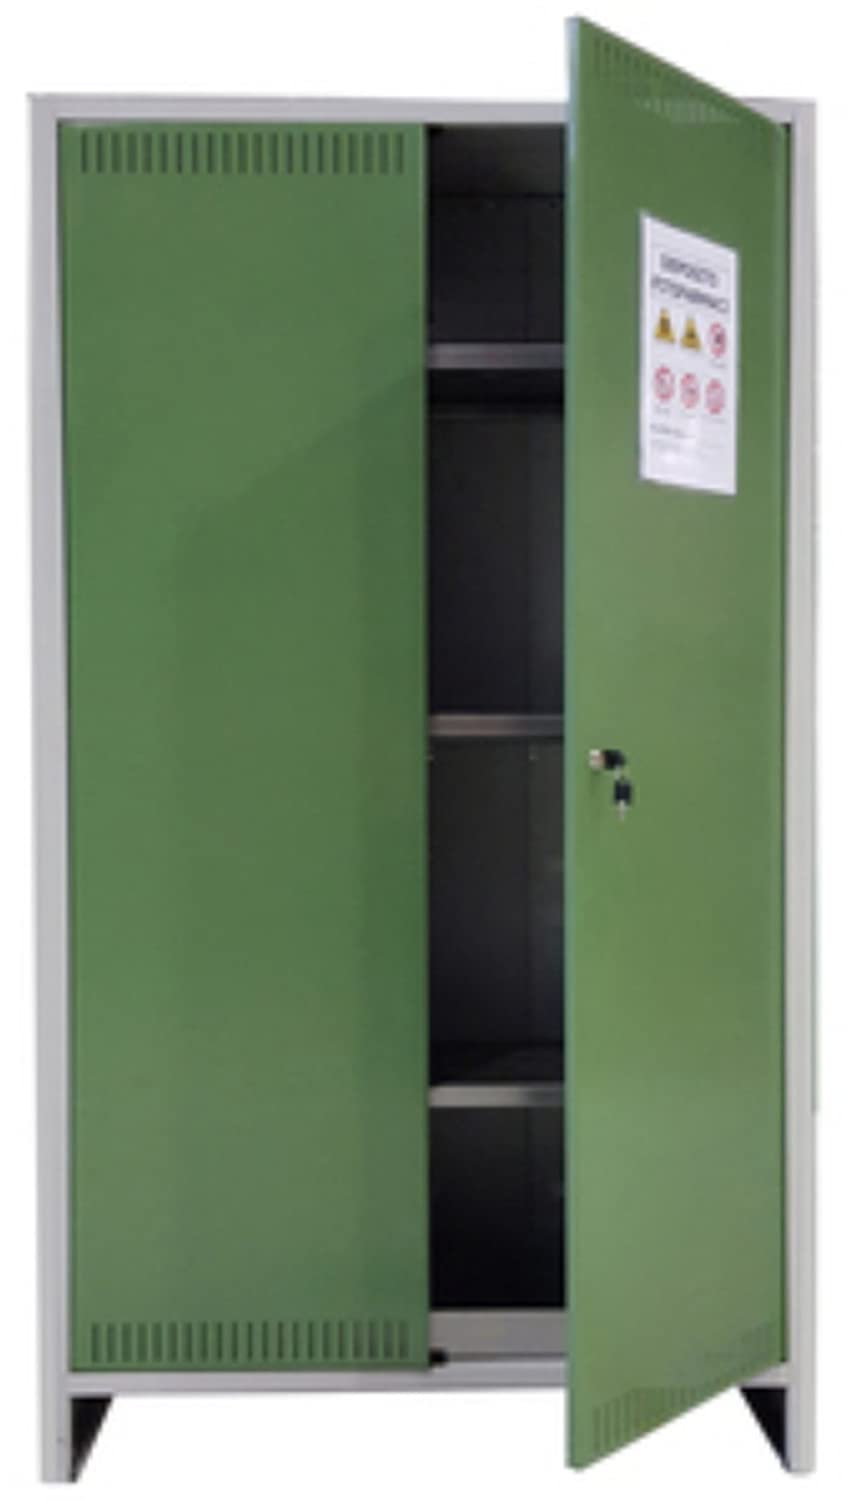 phytopharmaceuticals Pesticides Approved 1 Door Cabinet 2 Doors Various Sizes, 1A cm 50x40x179 h, 1